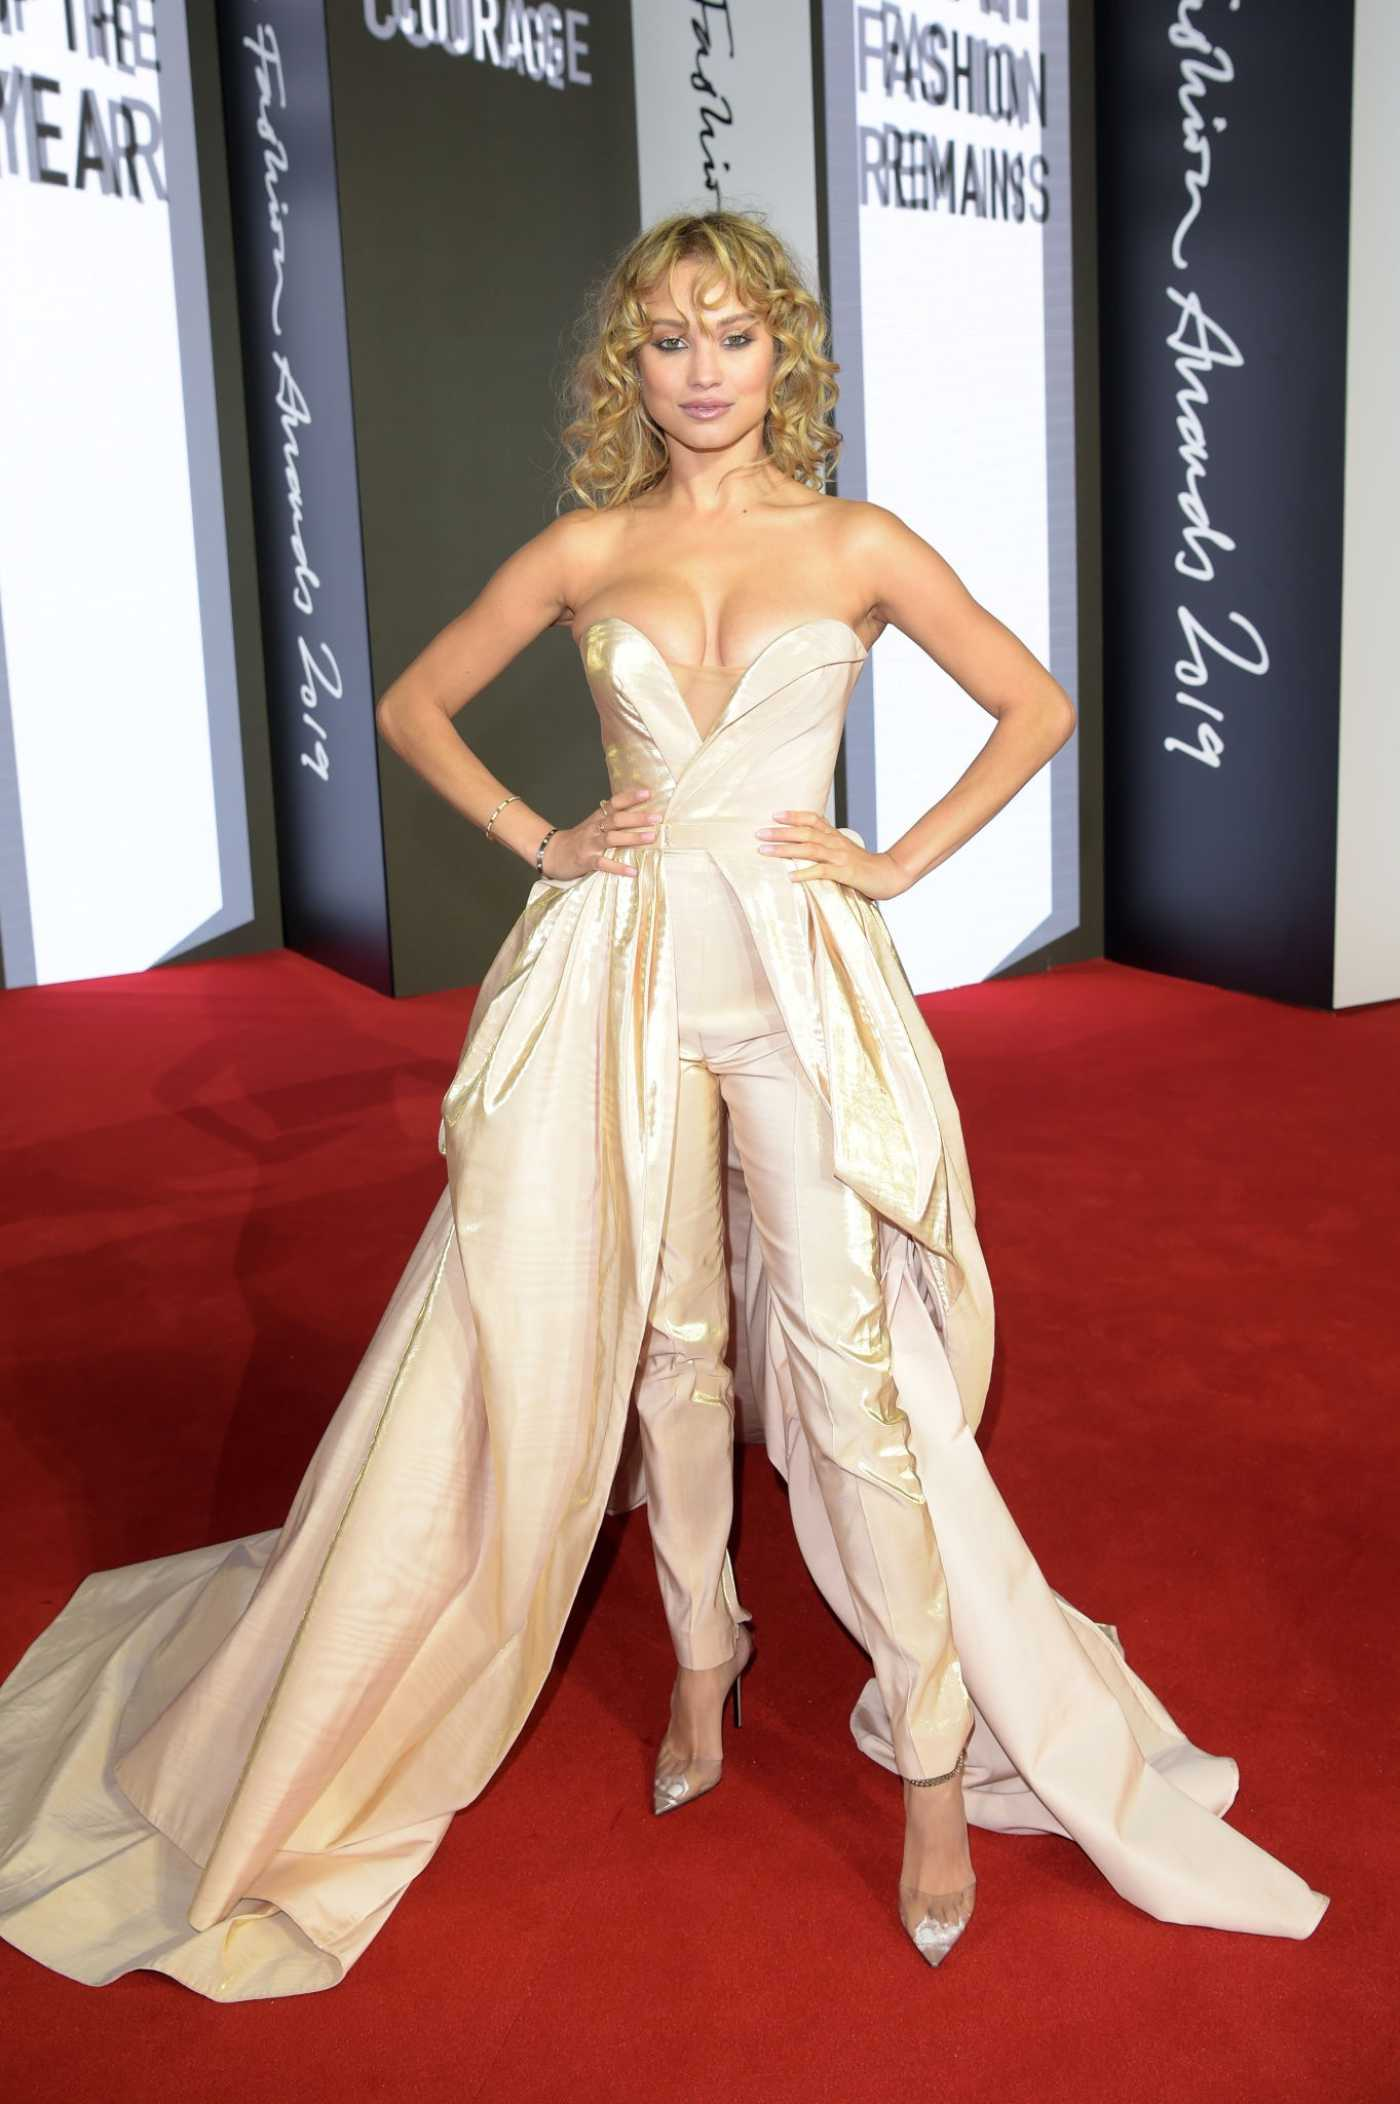 Rose Bertram Attends 2019 Fashion Awards at Royal Albert Hall in London 12/02/2019